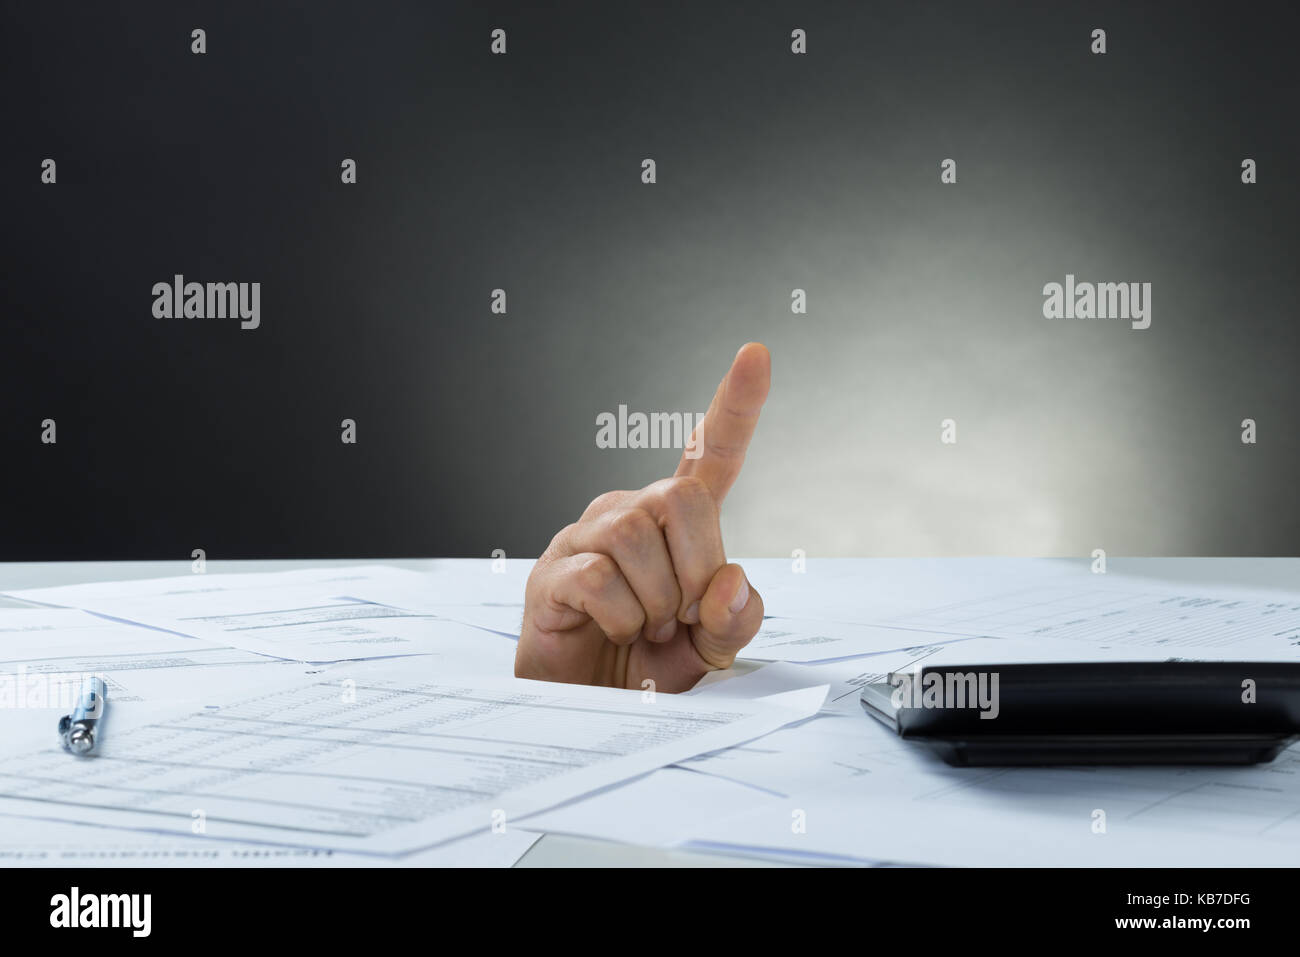 Closeup of businessman's hand emerging from documents - Stock Image